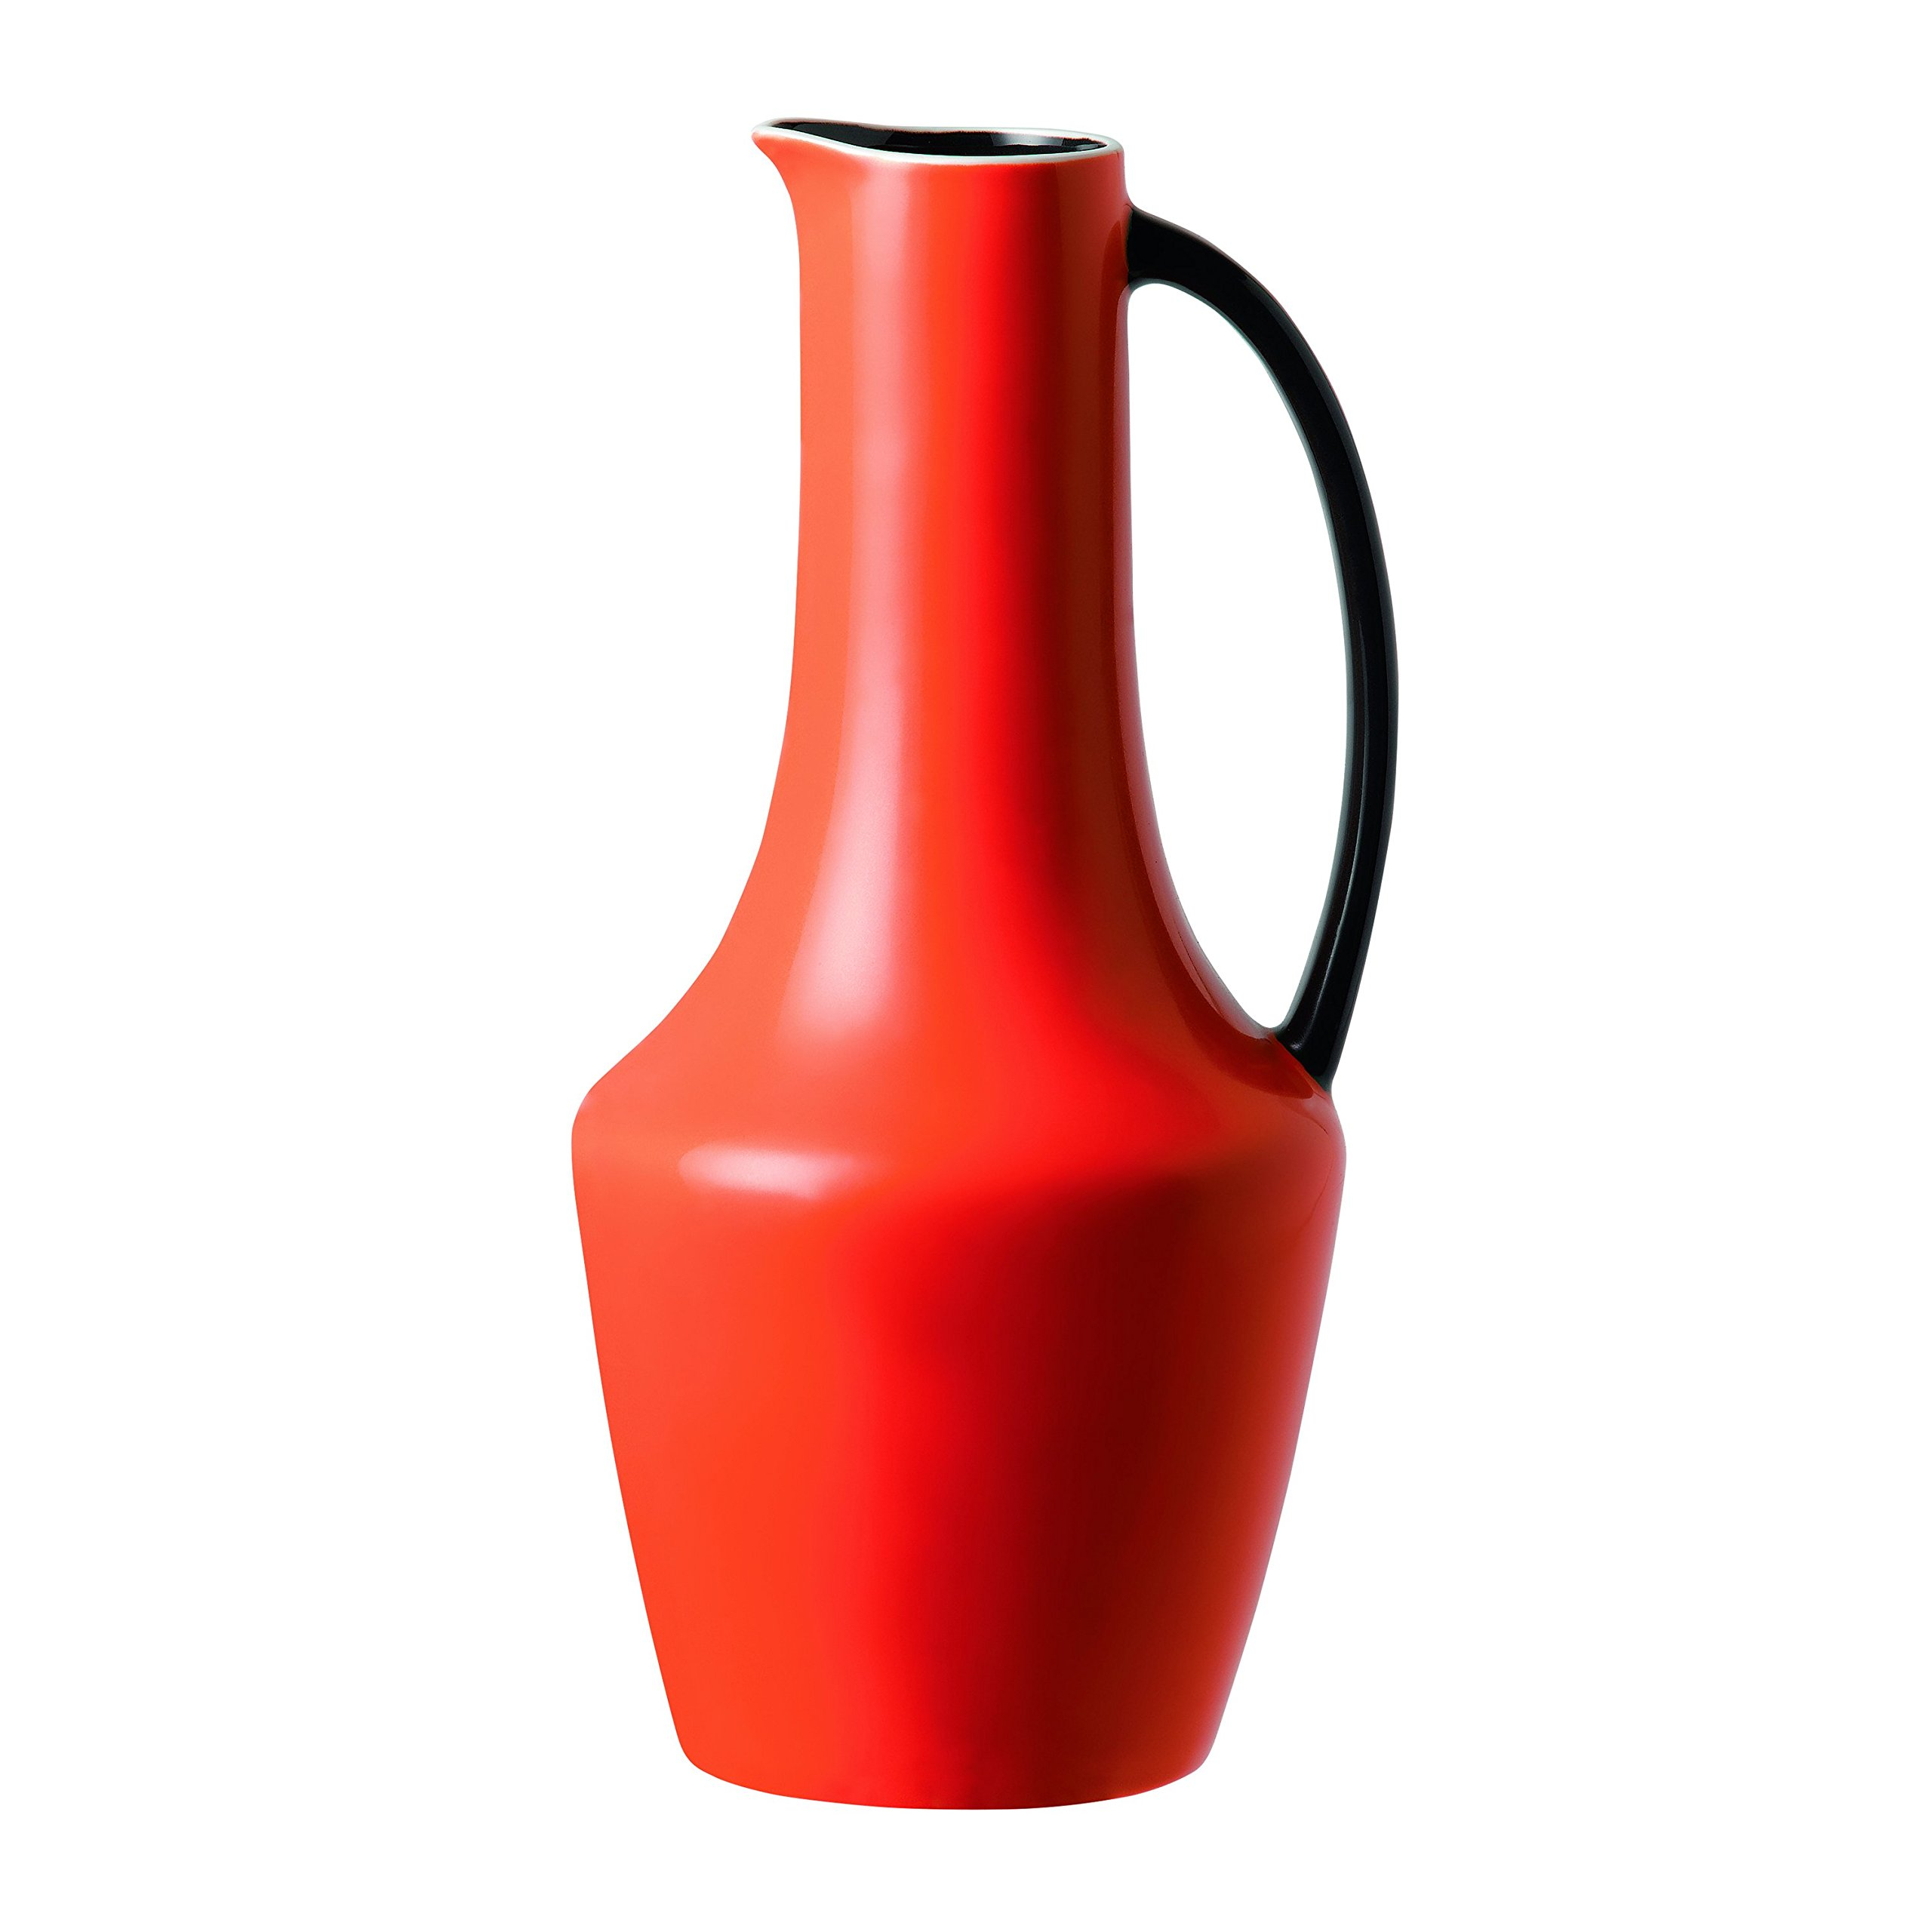 Royal Doulton 10.6'' Hemingway Pitcher, Medium by Royal Doulton